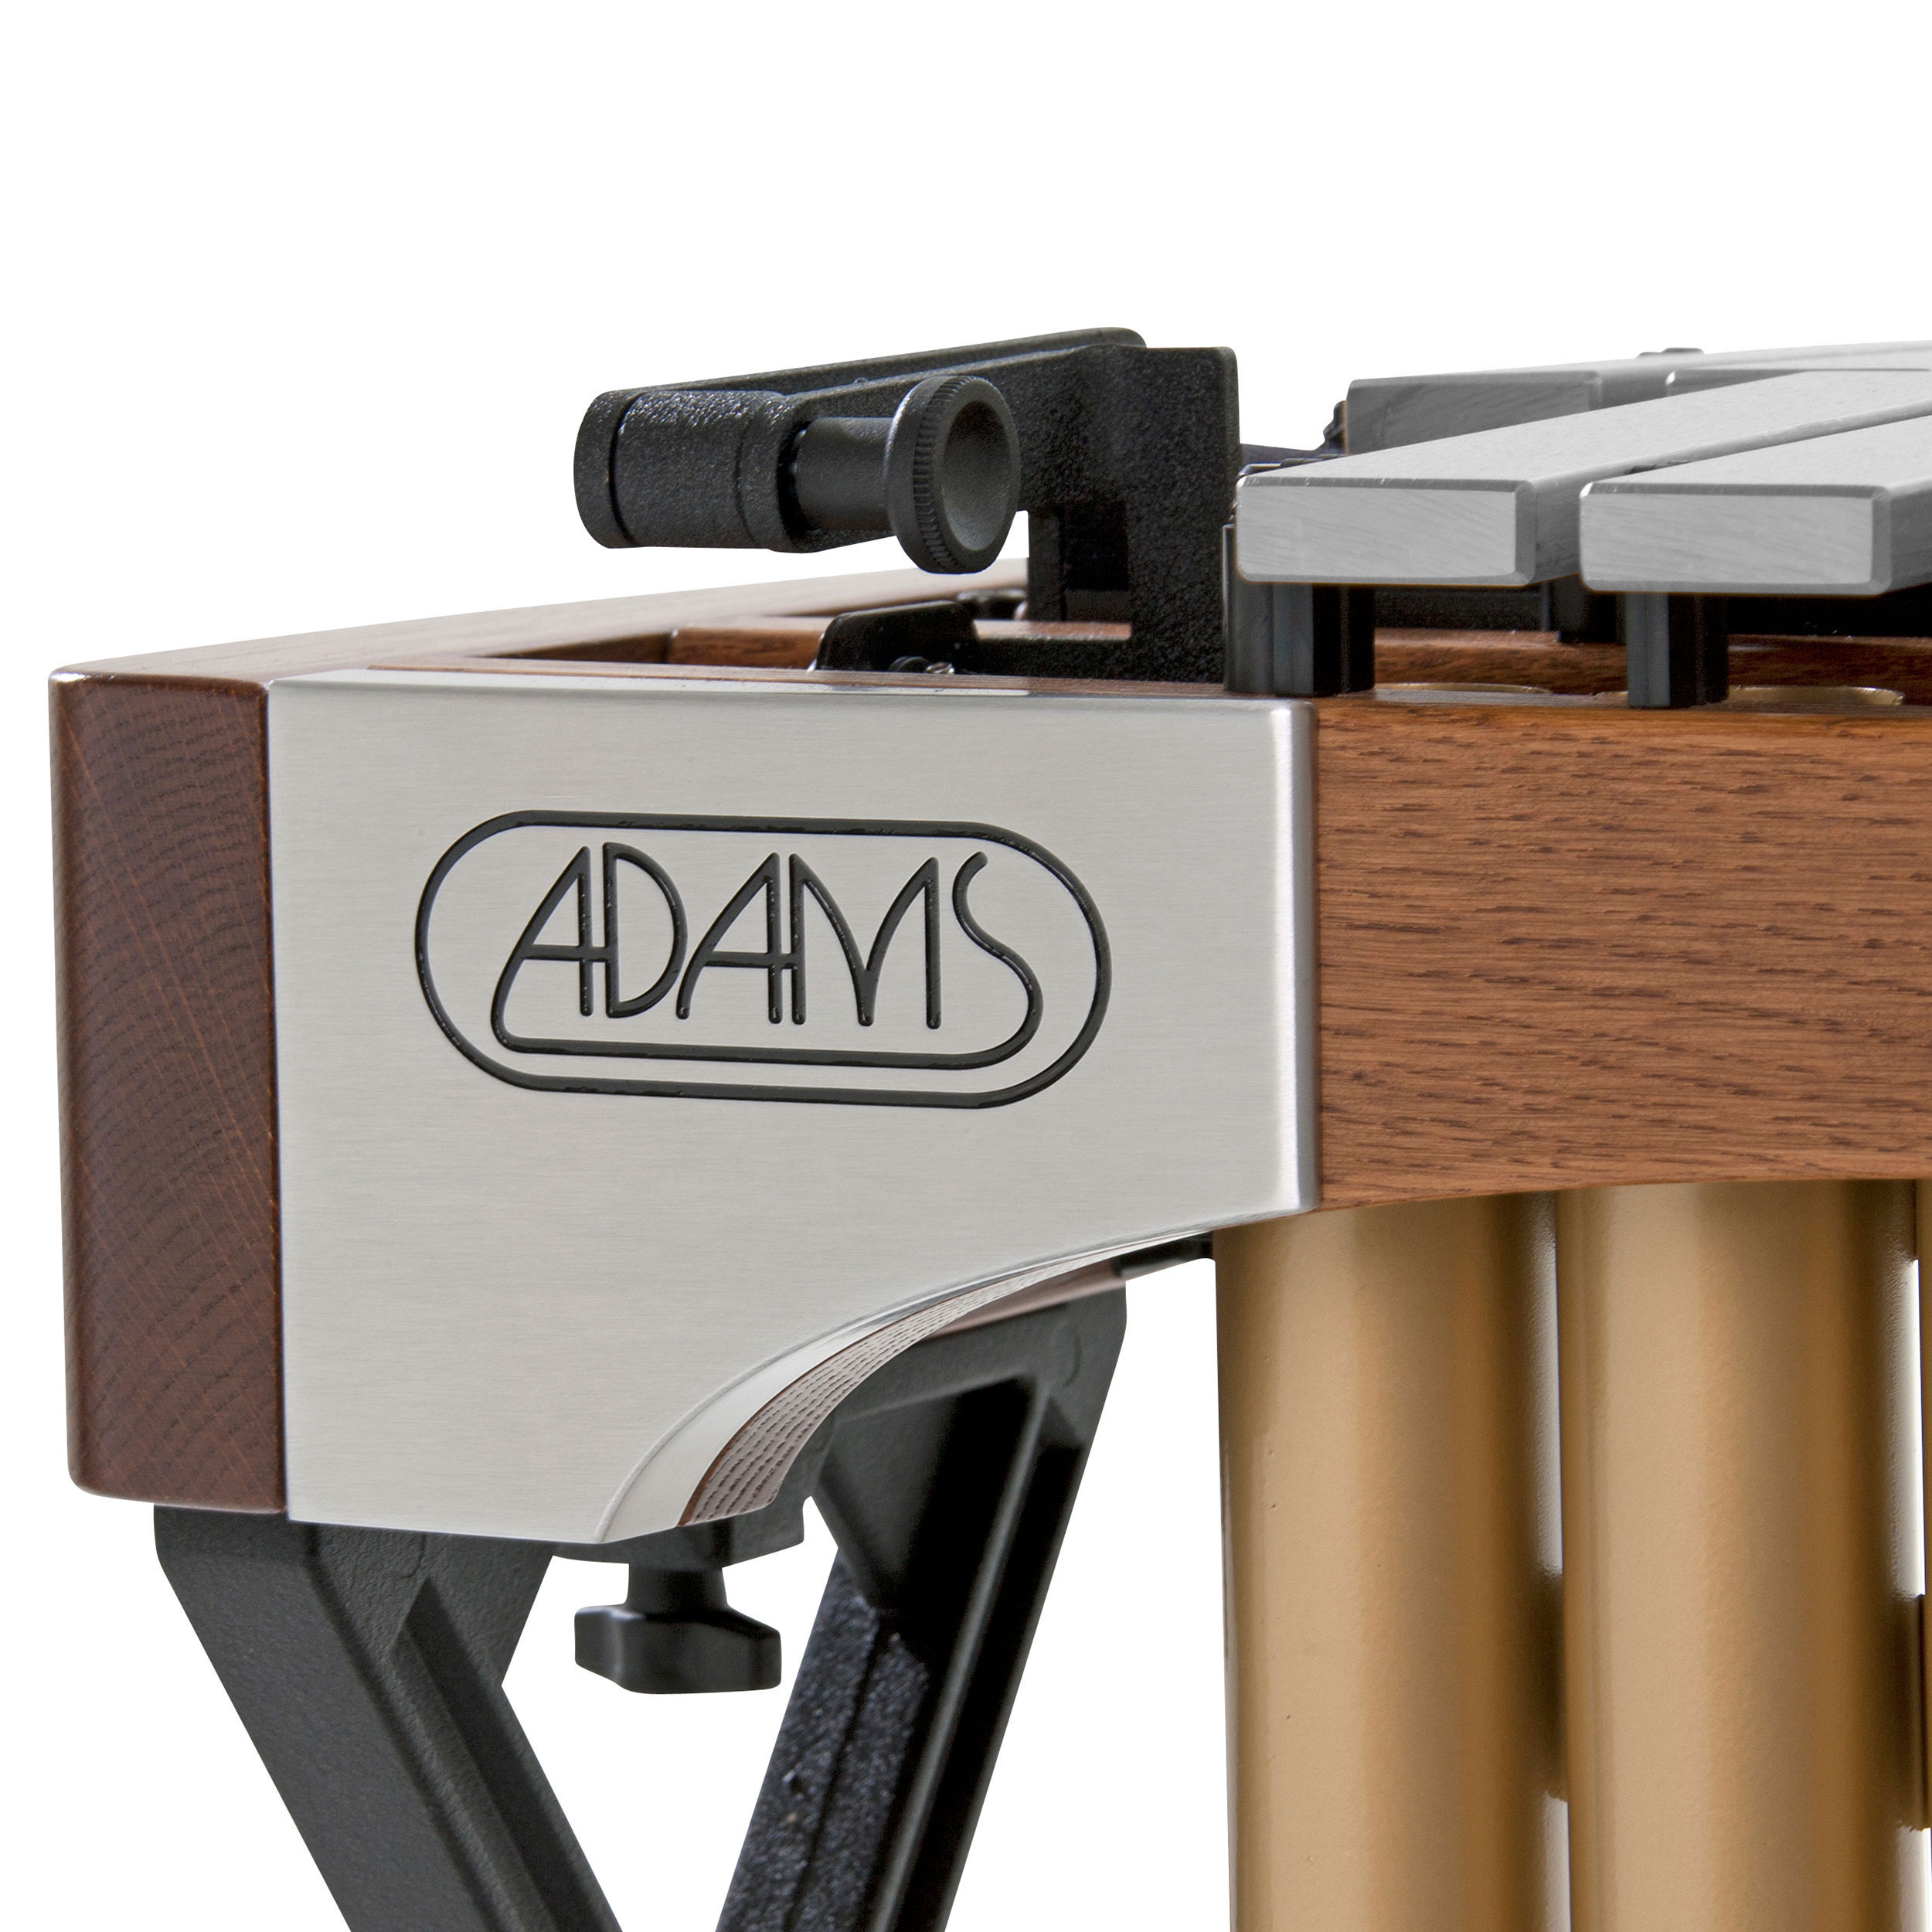 Adams 4.0 Octave Alpha Series Vibraphone with Silver Bars, Traveler Frame, and Motor